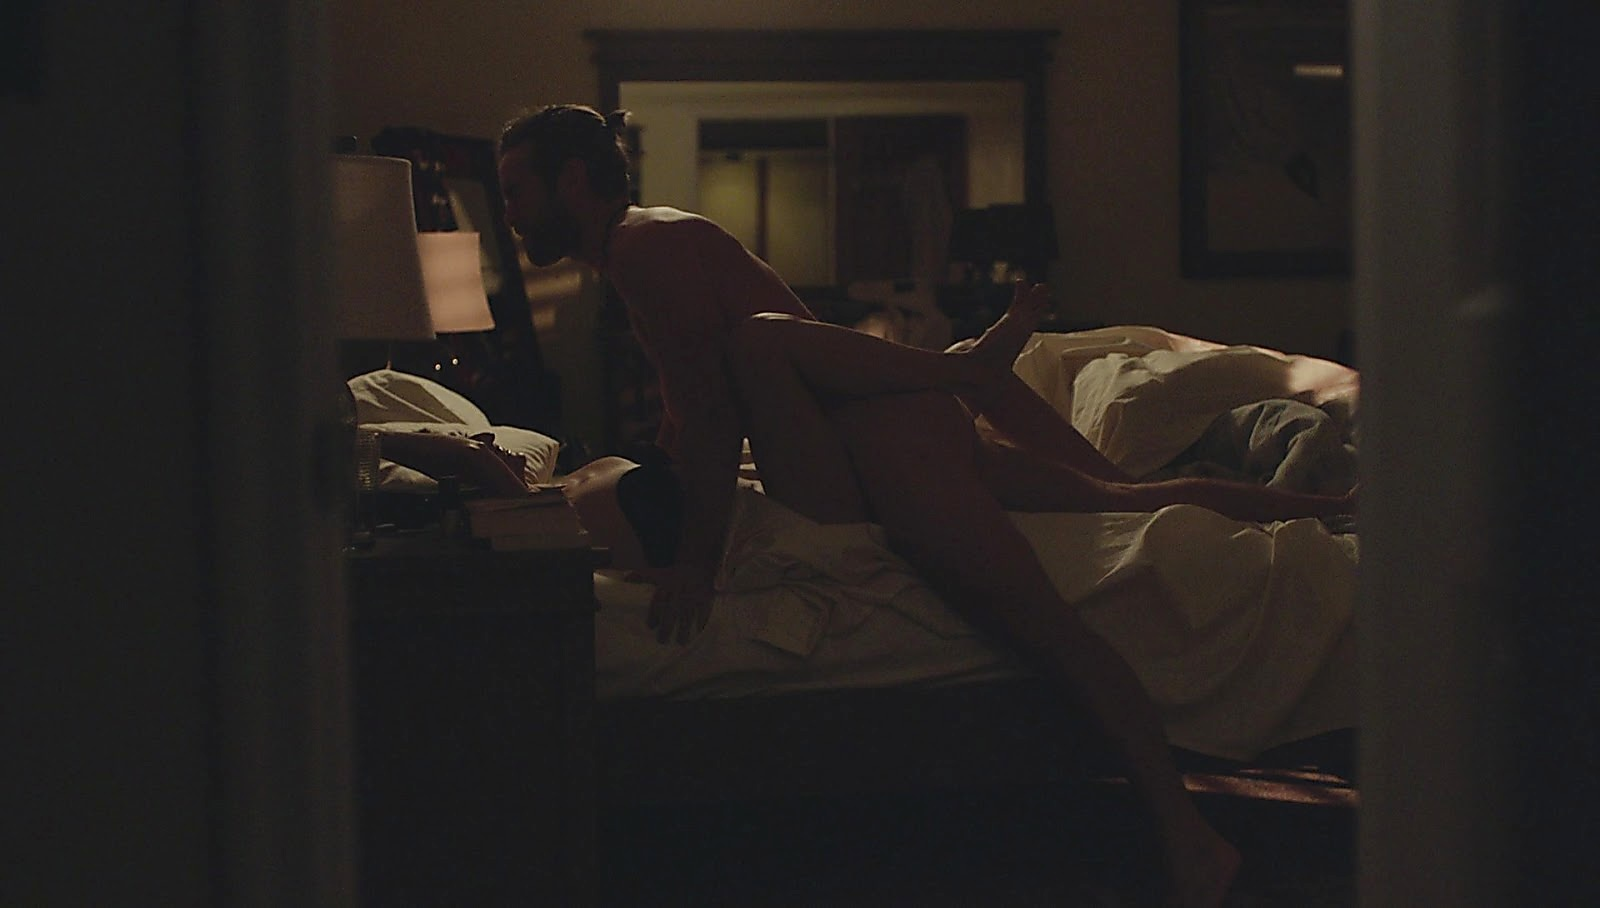 Chace Crawford sexy shirtless scene June 6, 2017, 1pm